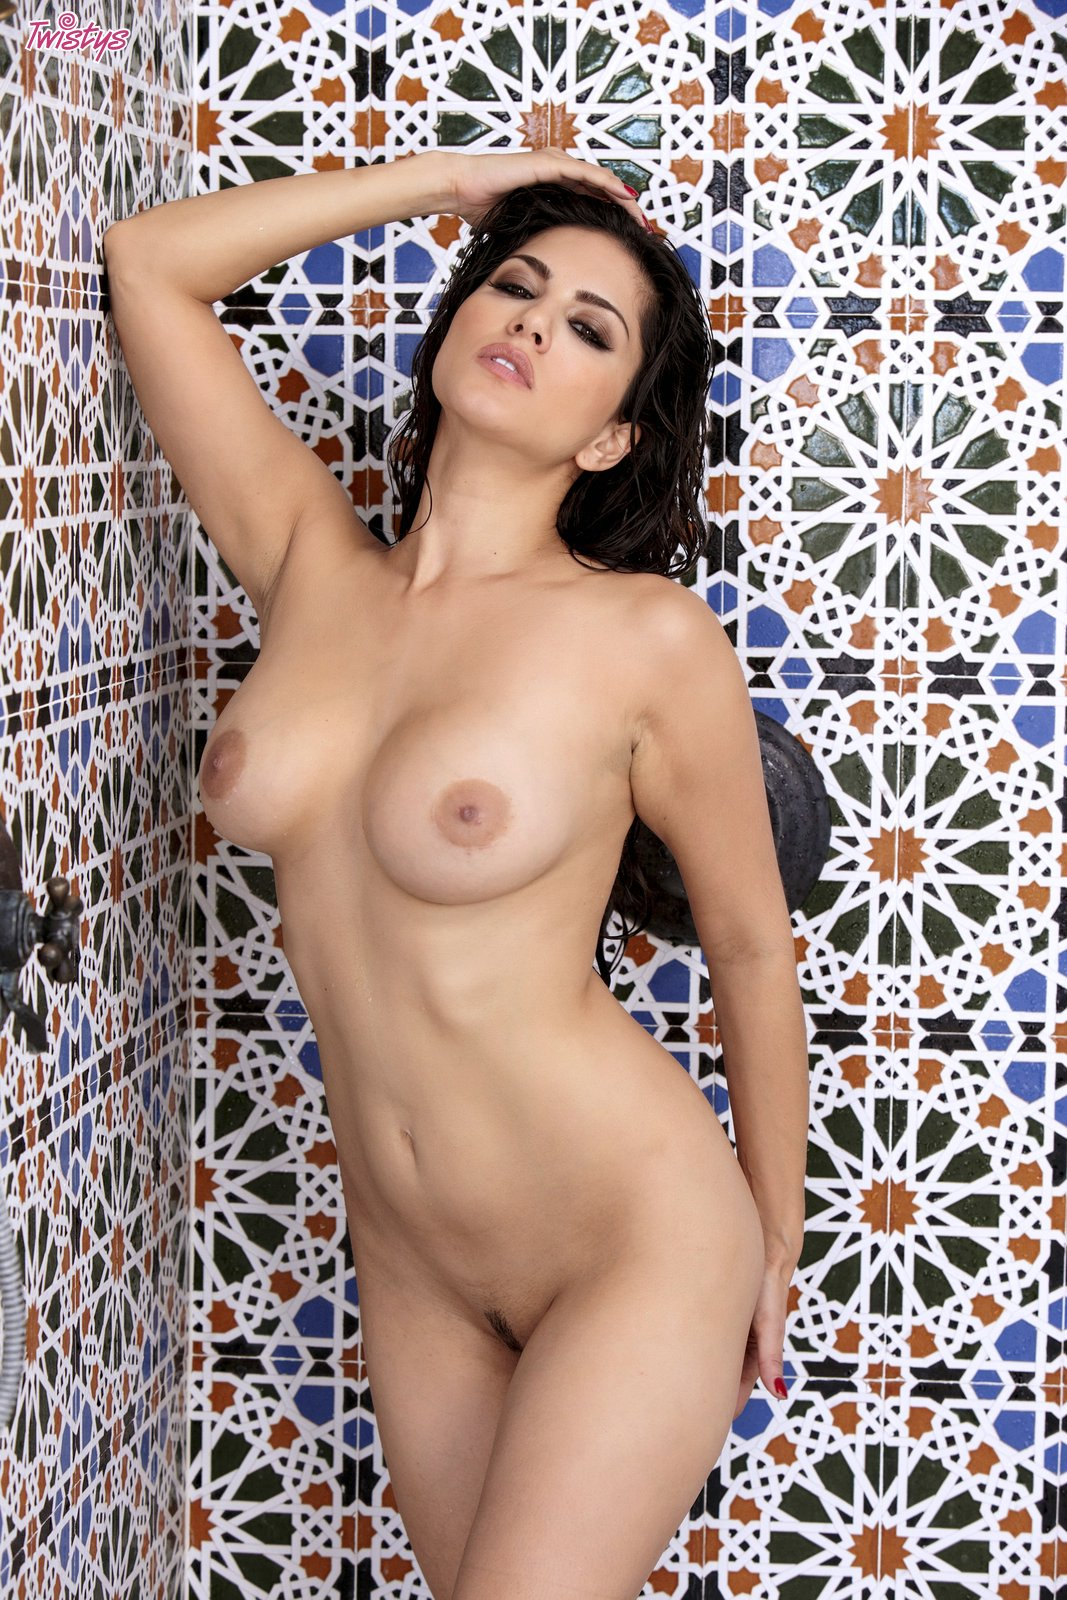 Free pornstar picture gallery speaking, opinion